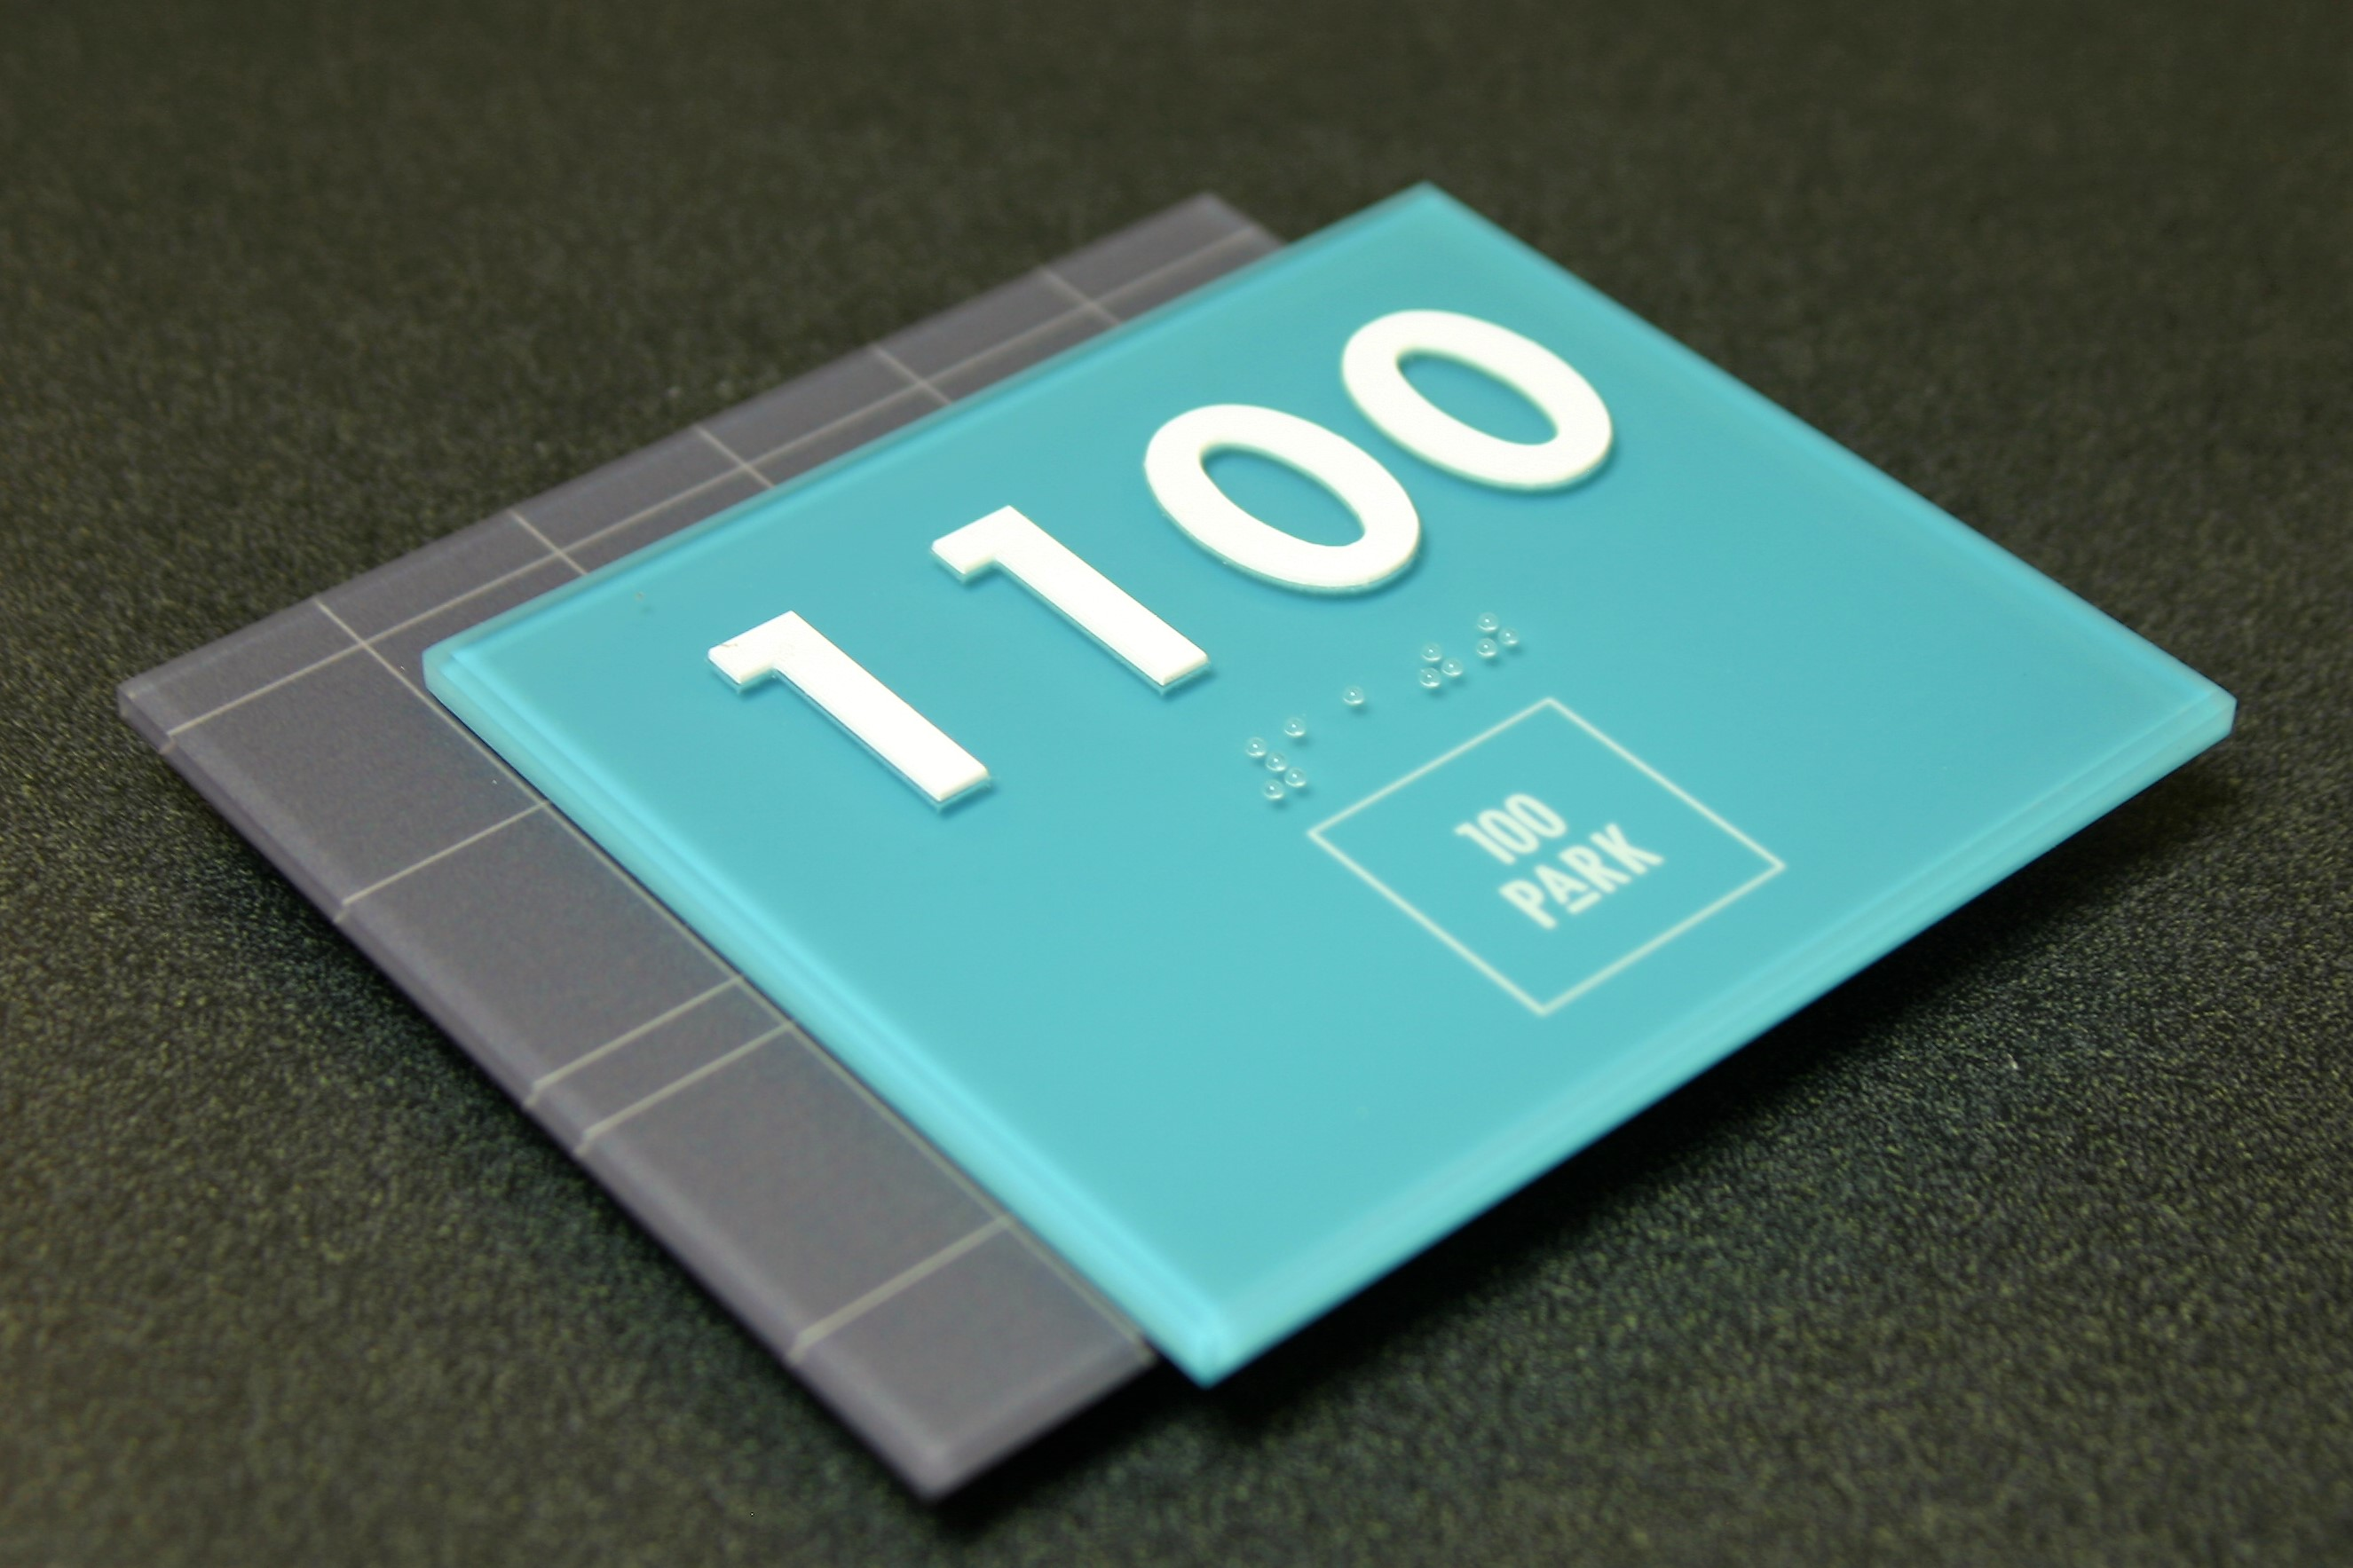 """.1875"""" non-glare acrylic faceplate with subsurface digitally printed graphics, .25"""" non-glare acrylic backplate with subsurface digitally printed graphics. Surface applied raised text and friction fit clear raster braille."""